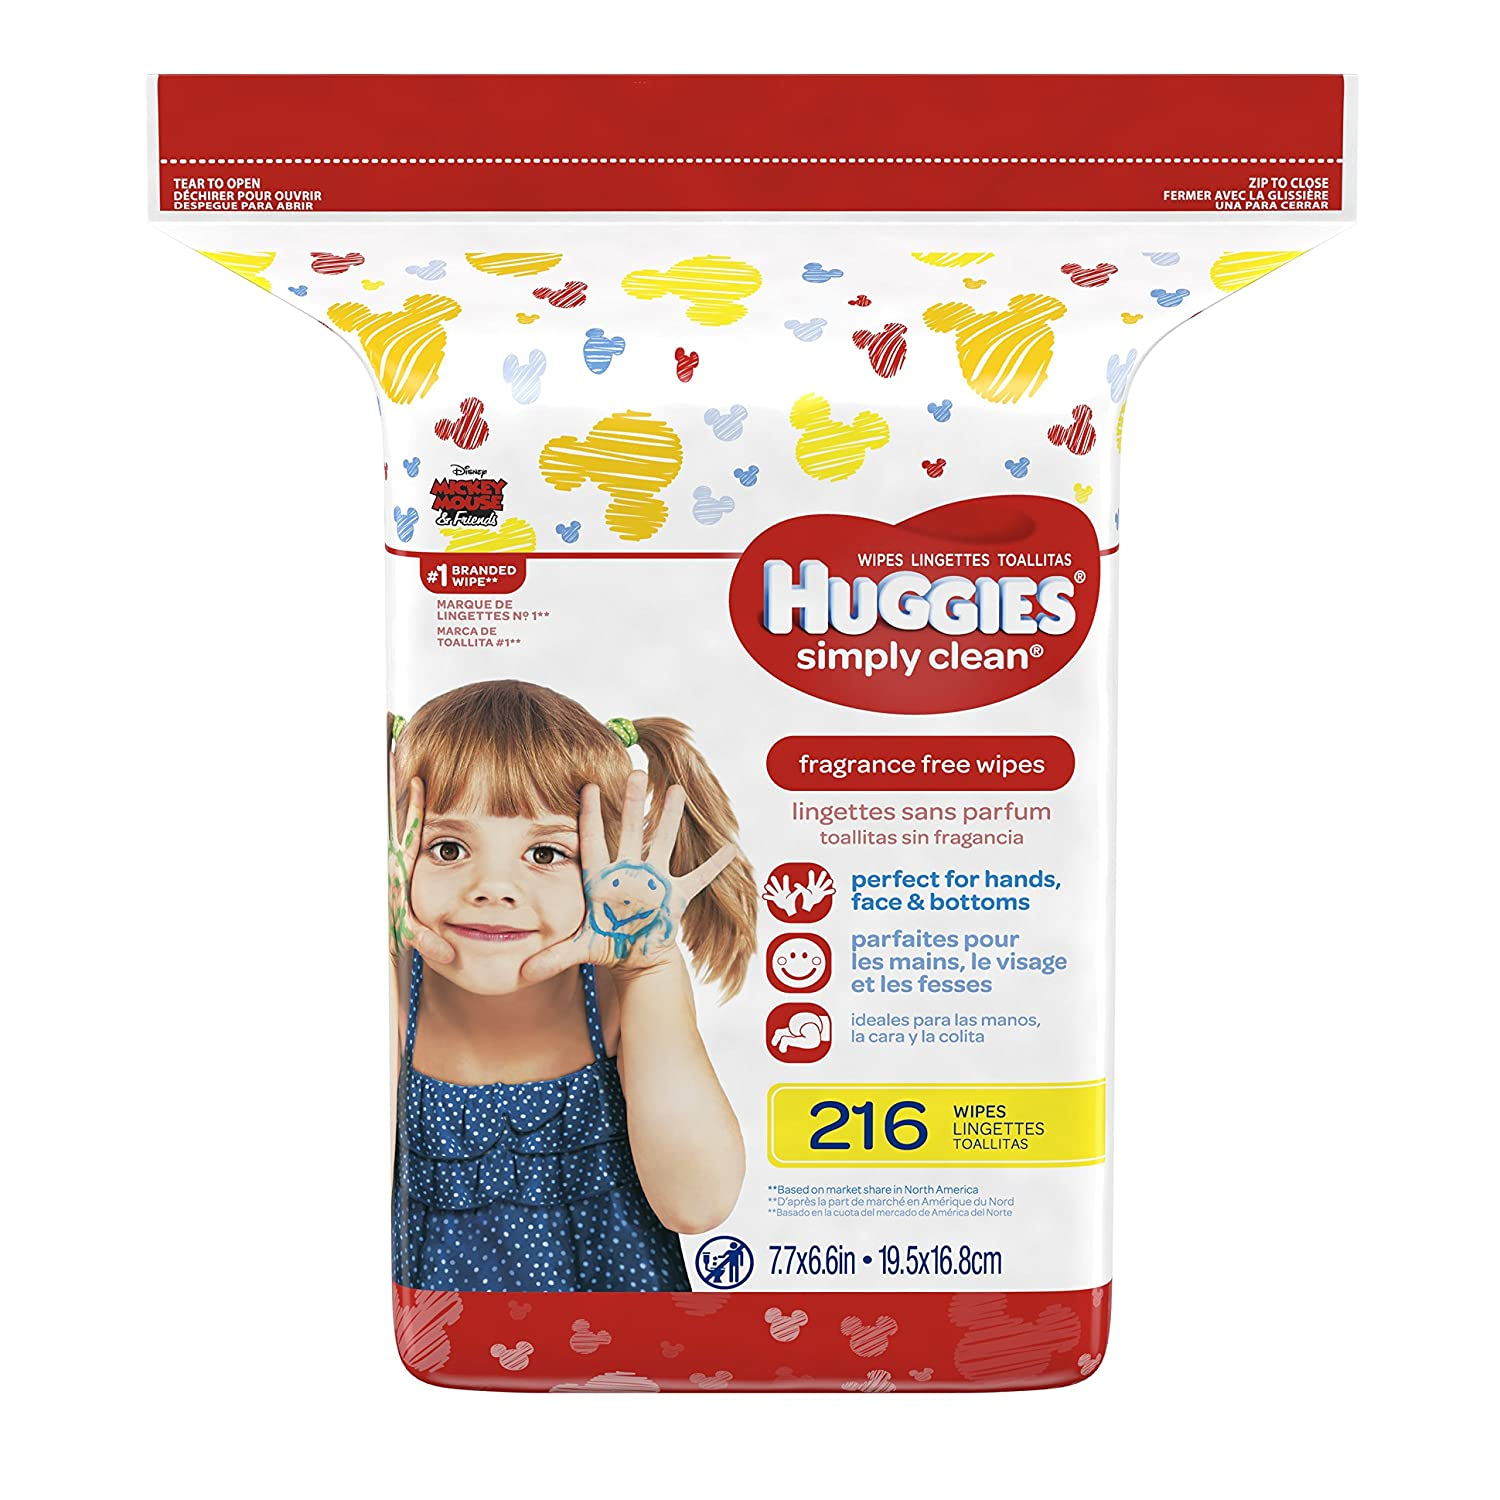 Huggies Simply Clean Fragrance-free Baby Wipes, Refill Pack, 216 Count Kimberly Clark 10036000487586